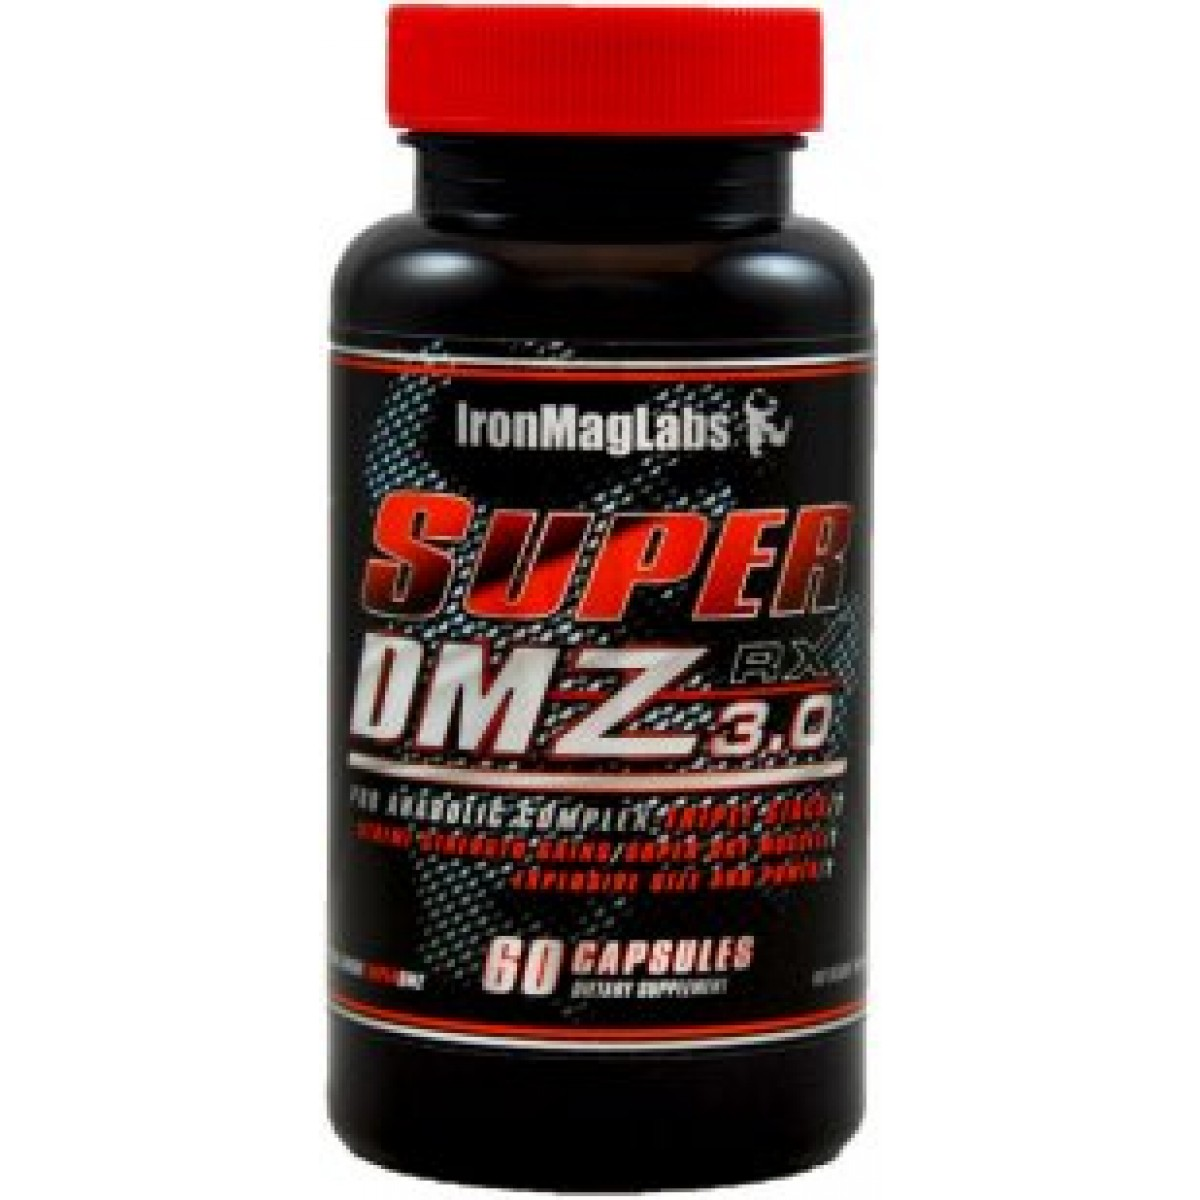 IronMagLabs SUPER-DMZ Rx 3.0™ - Pro-Anabolic Triple Complex